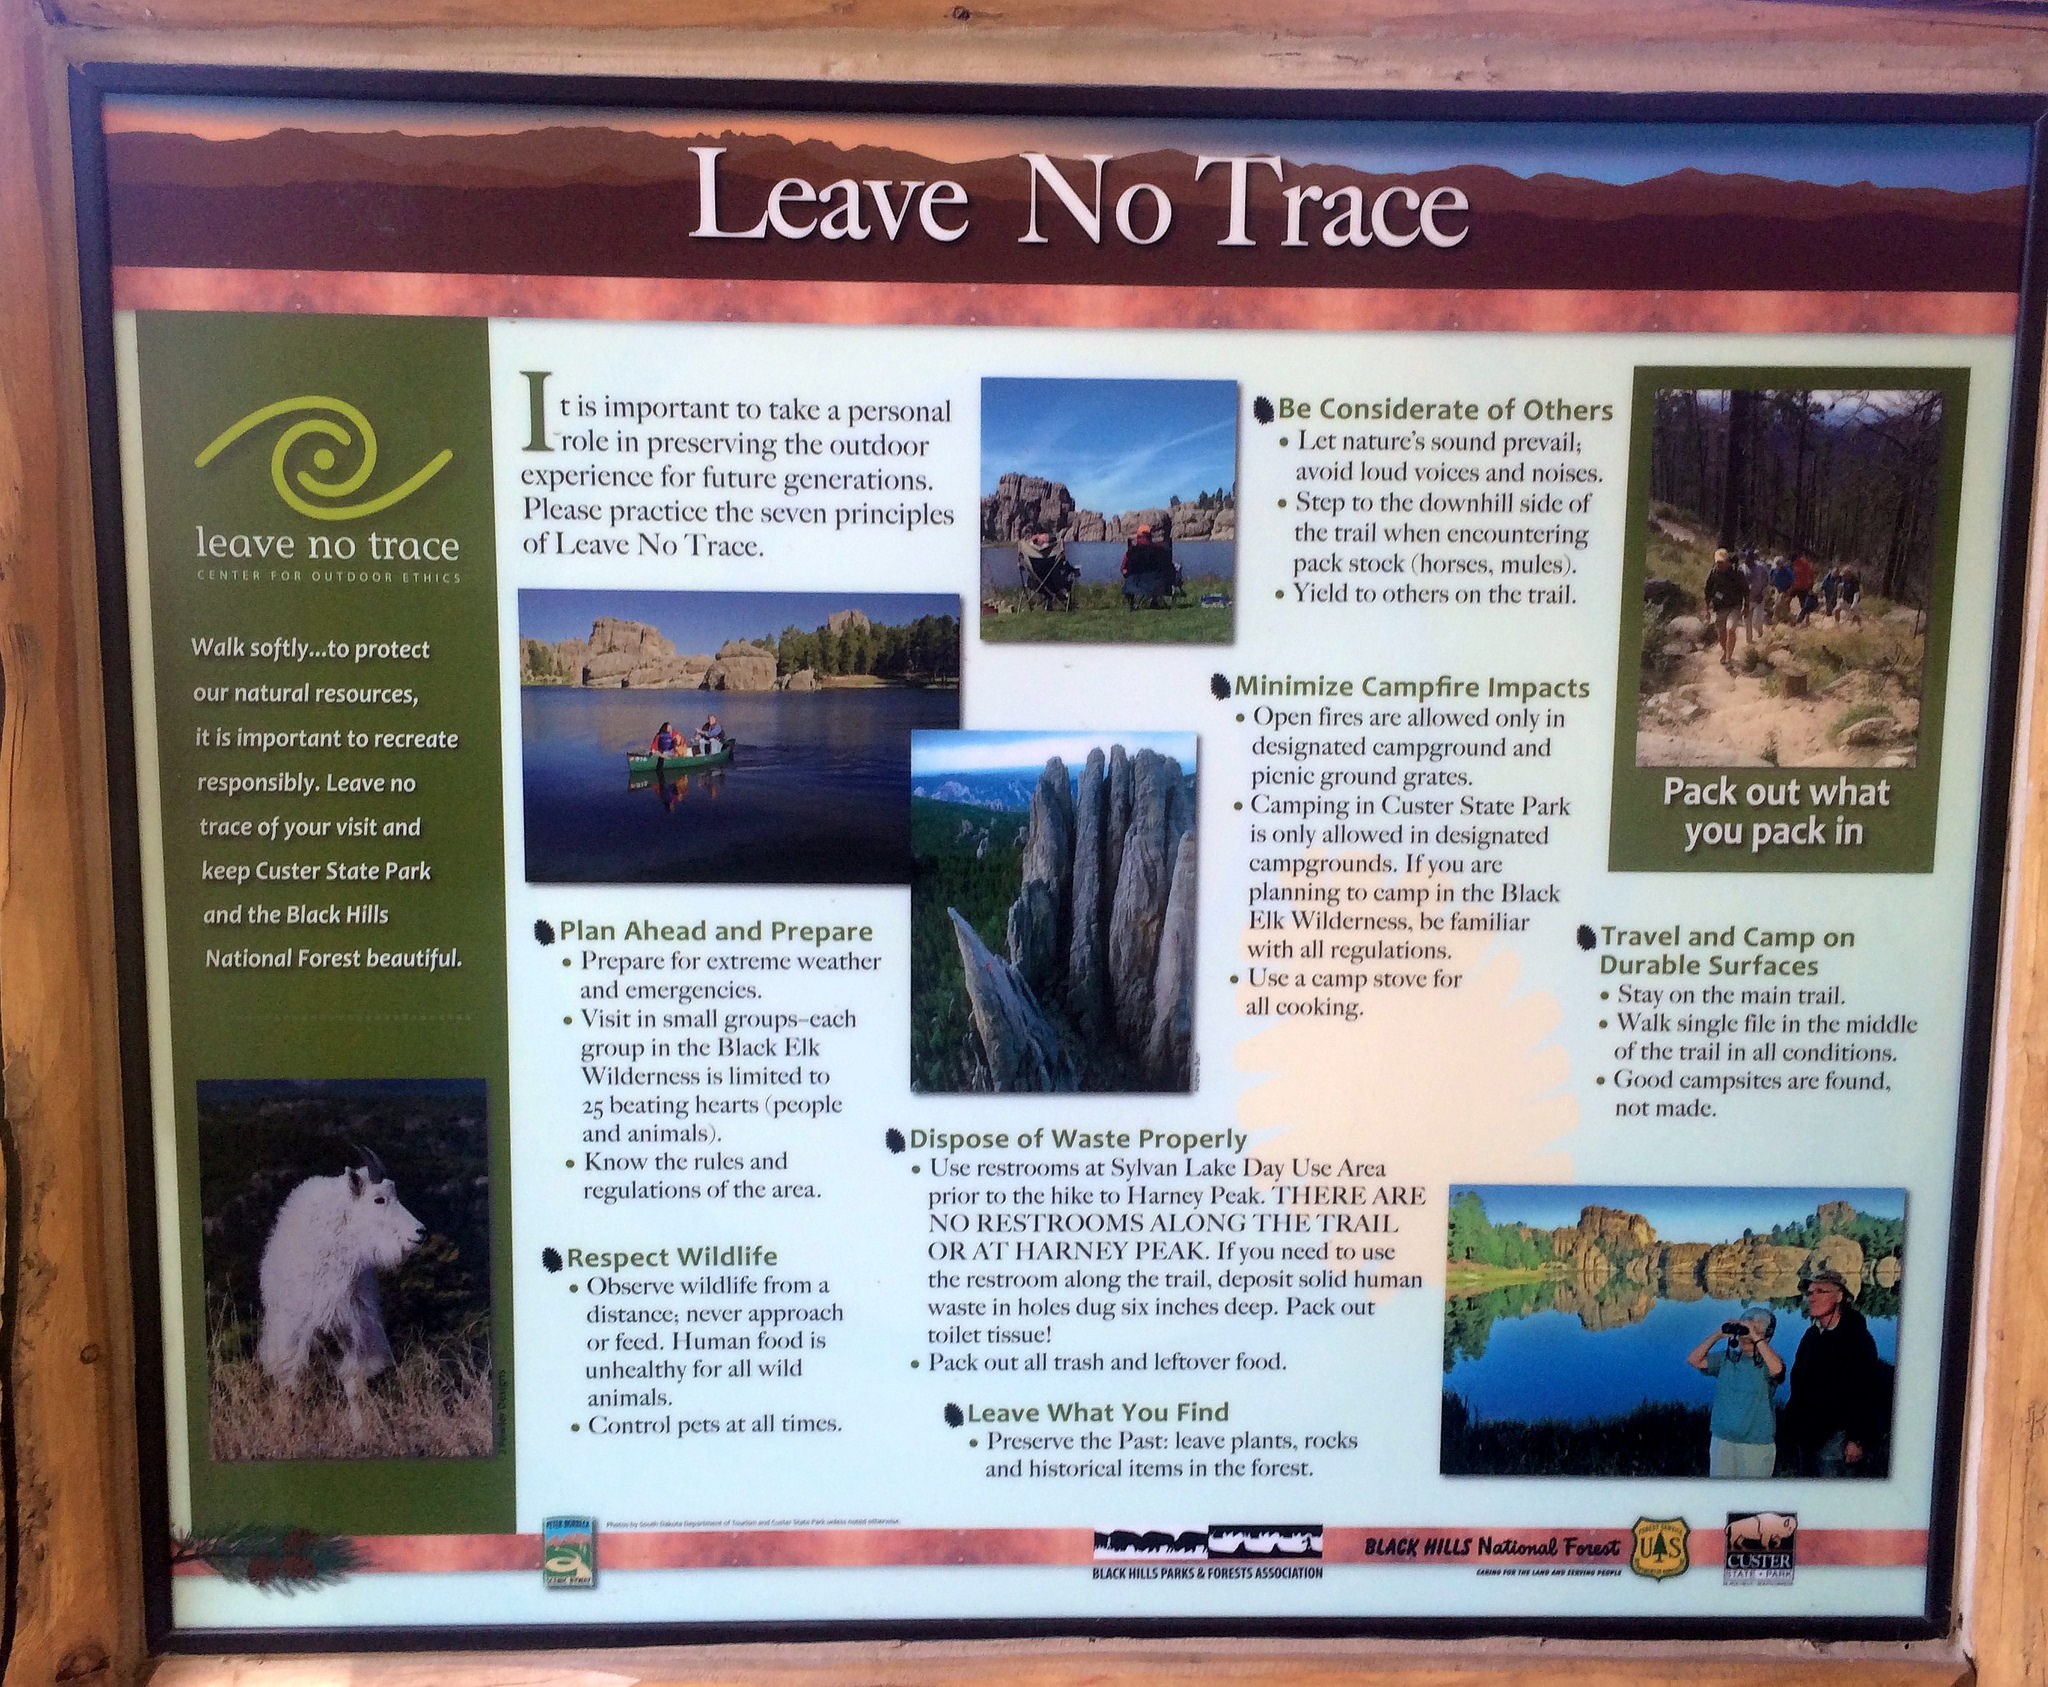 A. Leave No Trace signage with logo, Seven Principles and brief description of each.